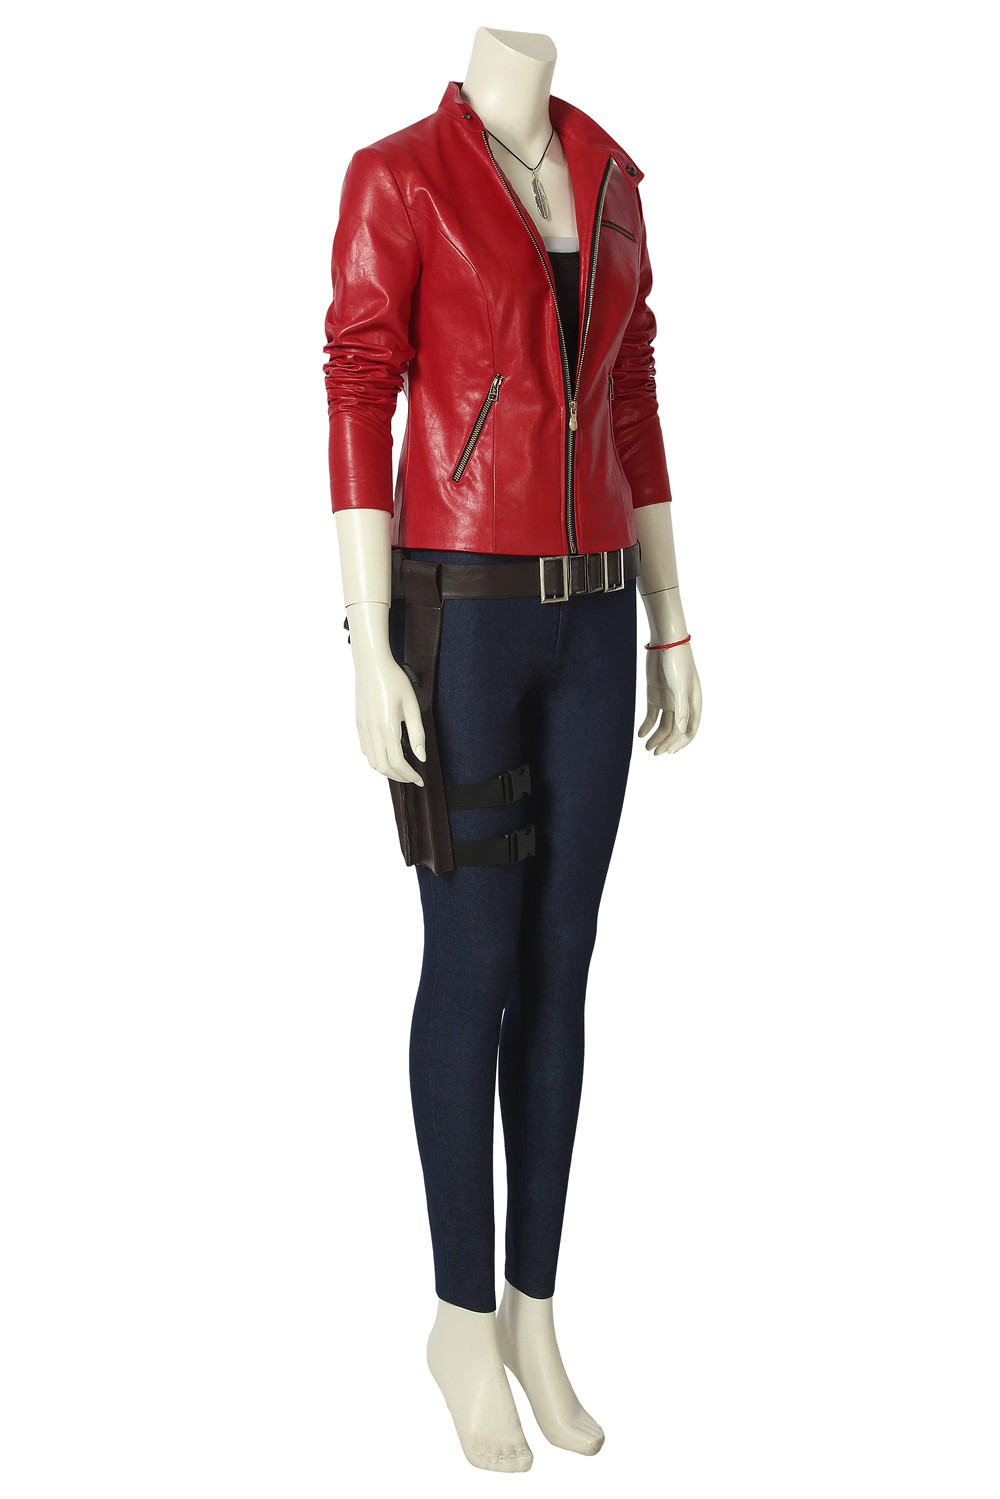 RE 2 Claire Redfield Cosplay Costume Red Jacket Women Outfit